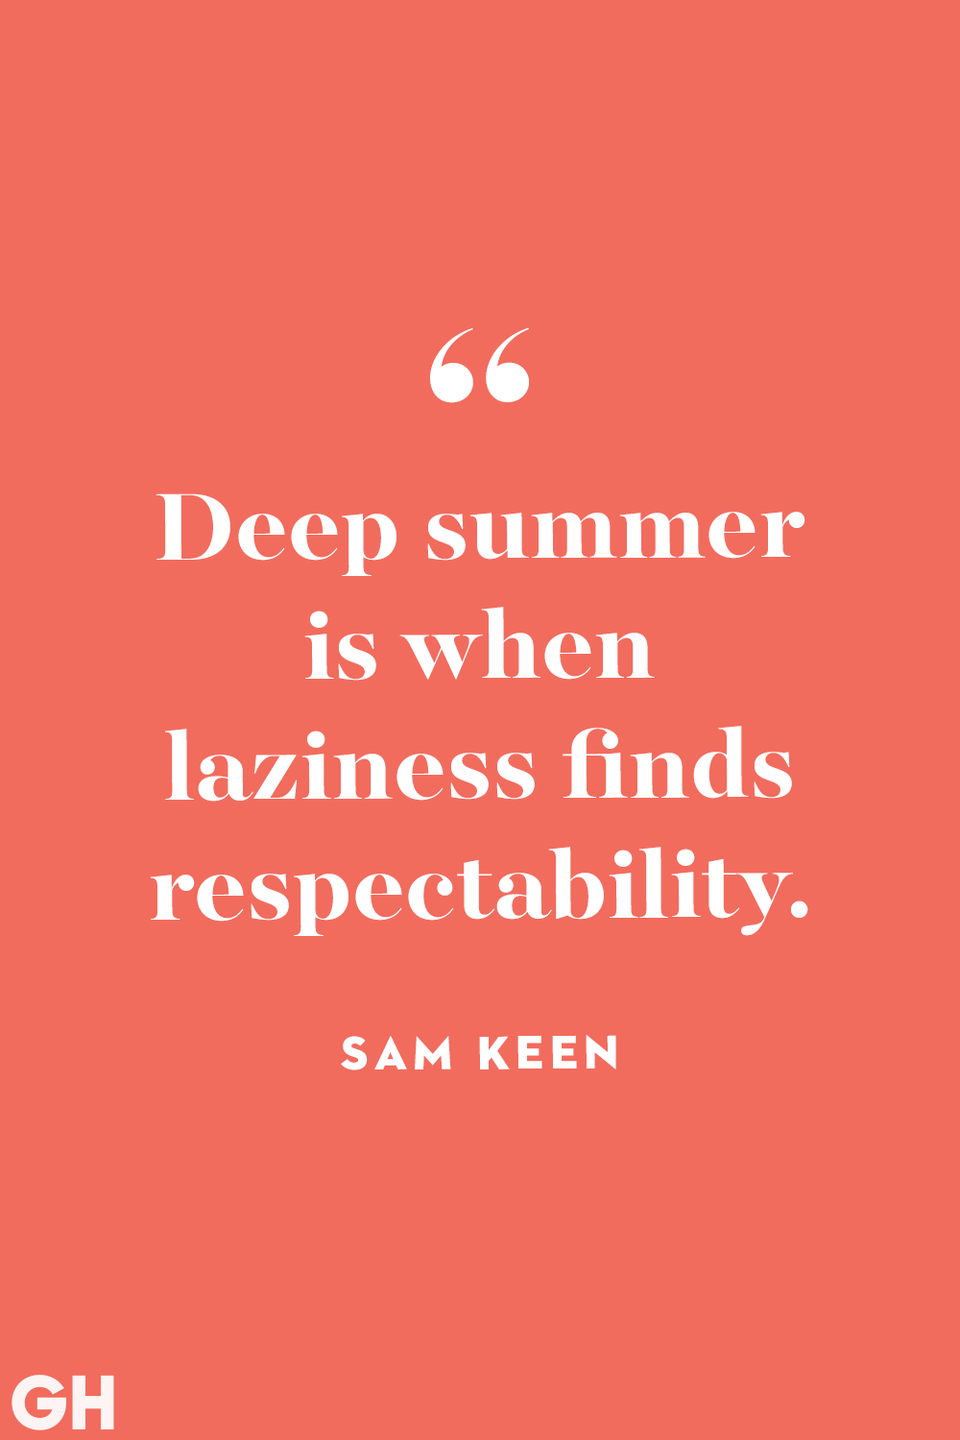 <p>Deep summer is when laziness finds respectability.</p>